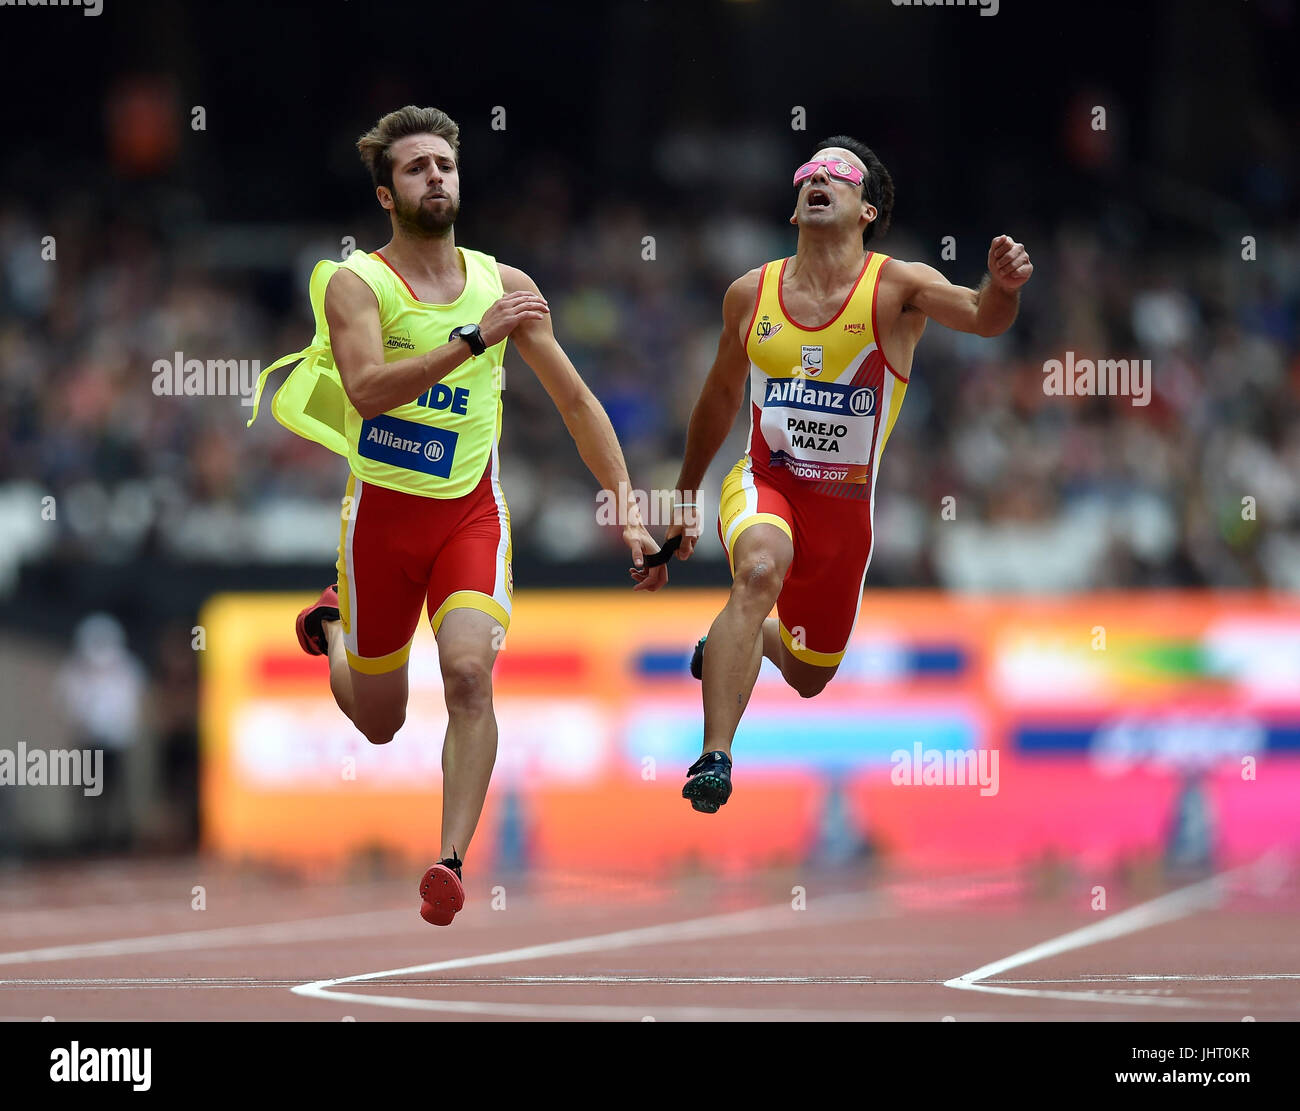 Londres, Royaume-Uni. 15 juillet, 2017. Martin Masa Parejo, guide Albert Selva Comadran (EPS) pendant le 100 M T11, Photo Stock